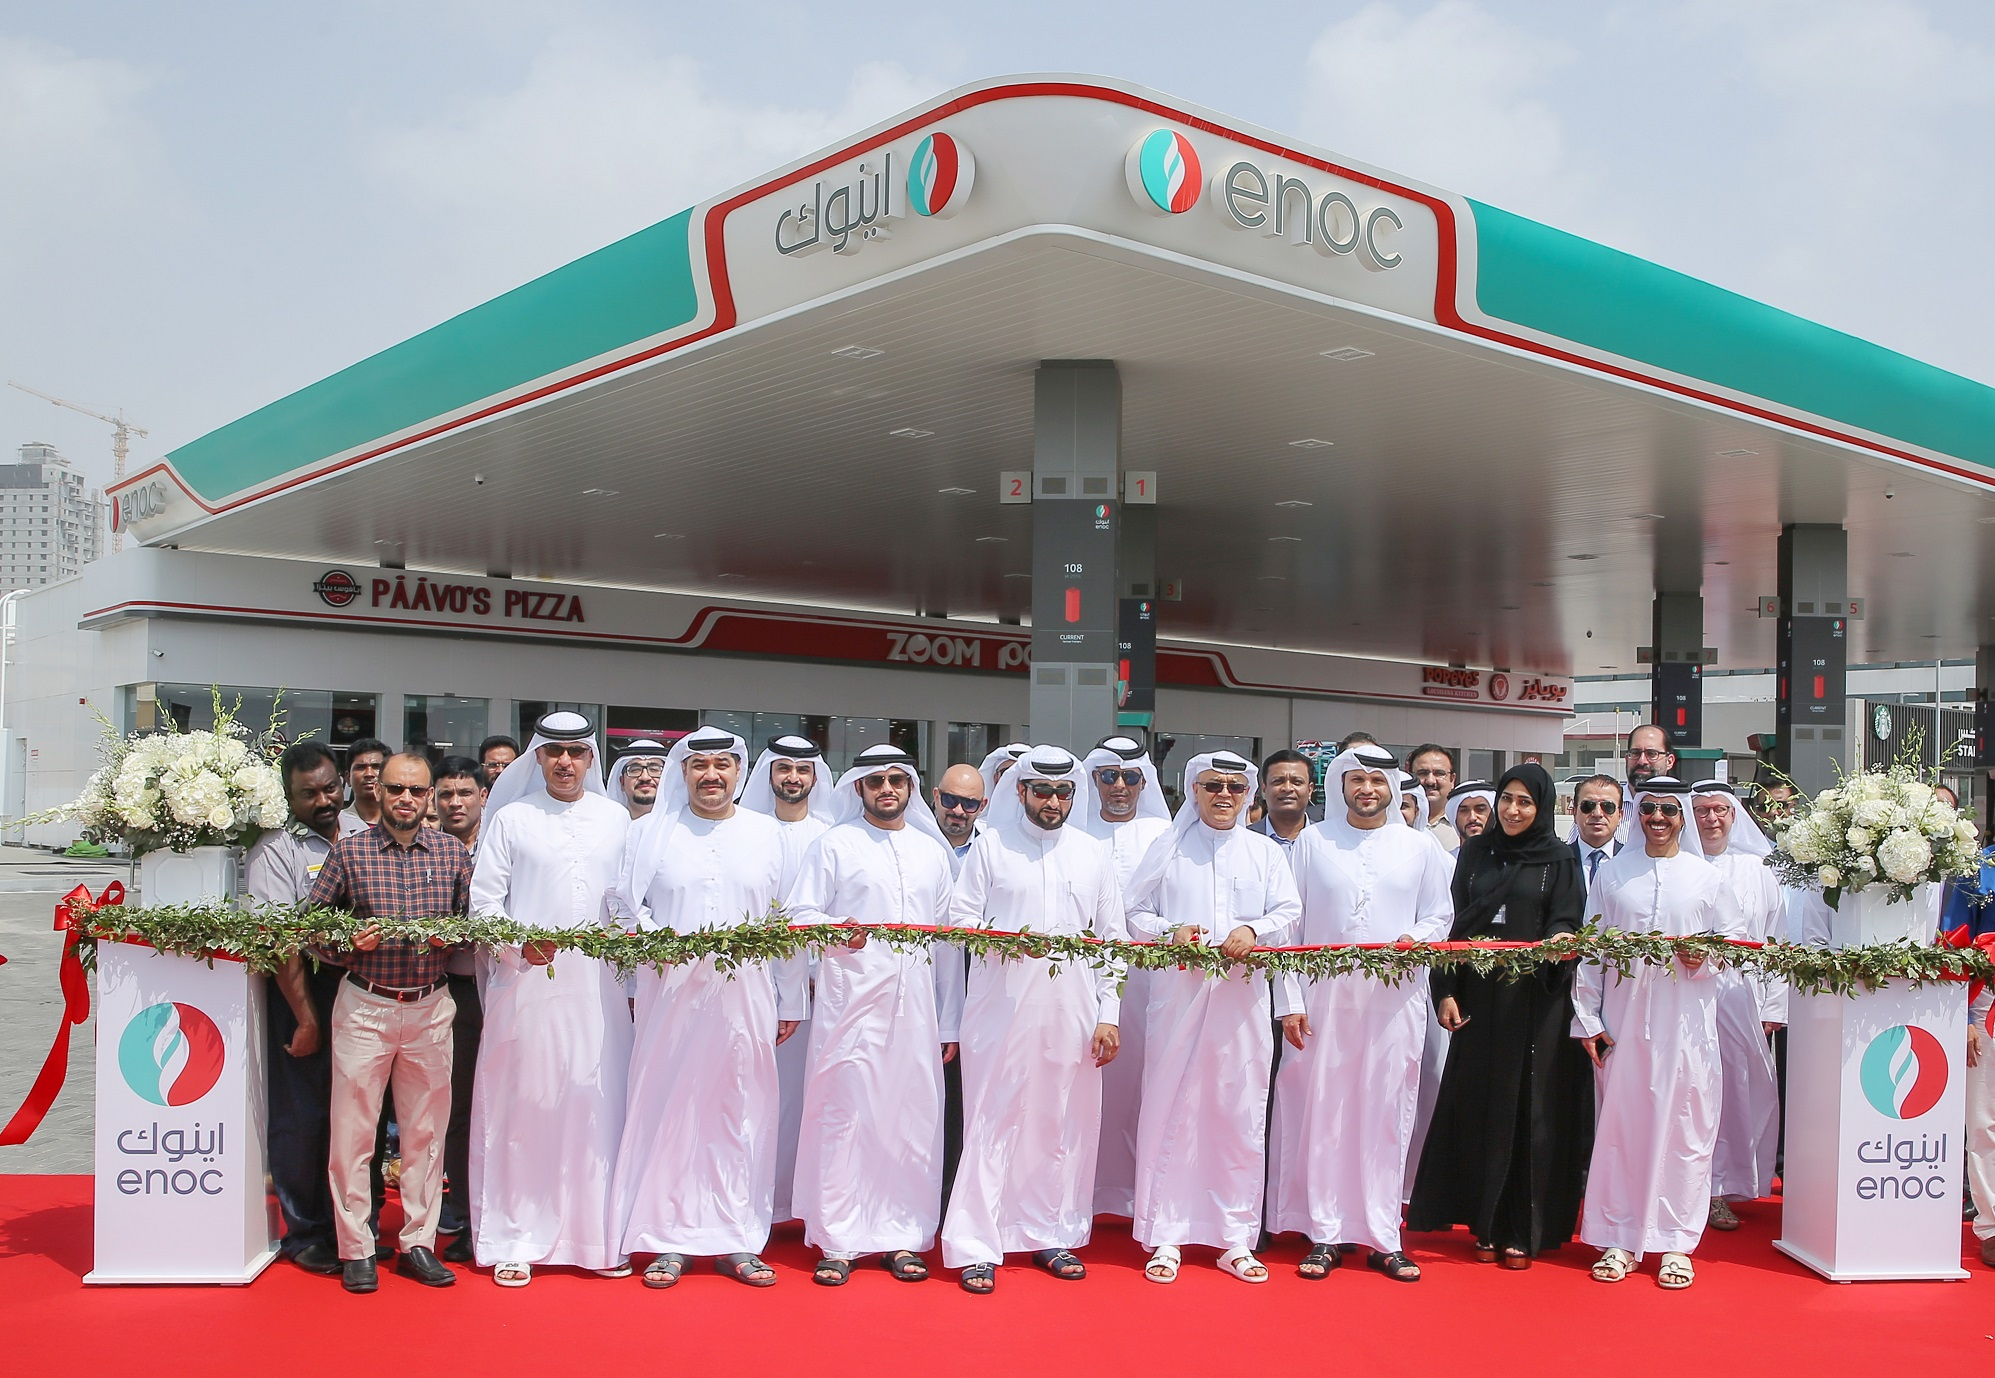 ENOC Group opens new service station in Fujairah - Future of retail